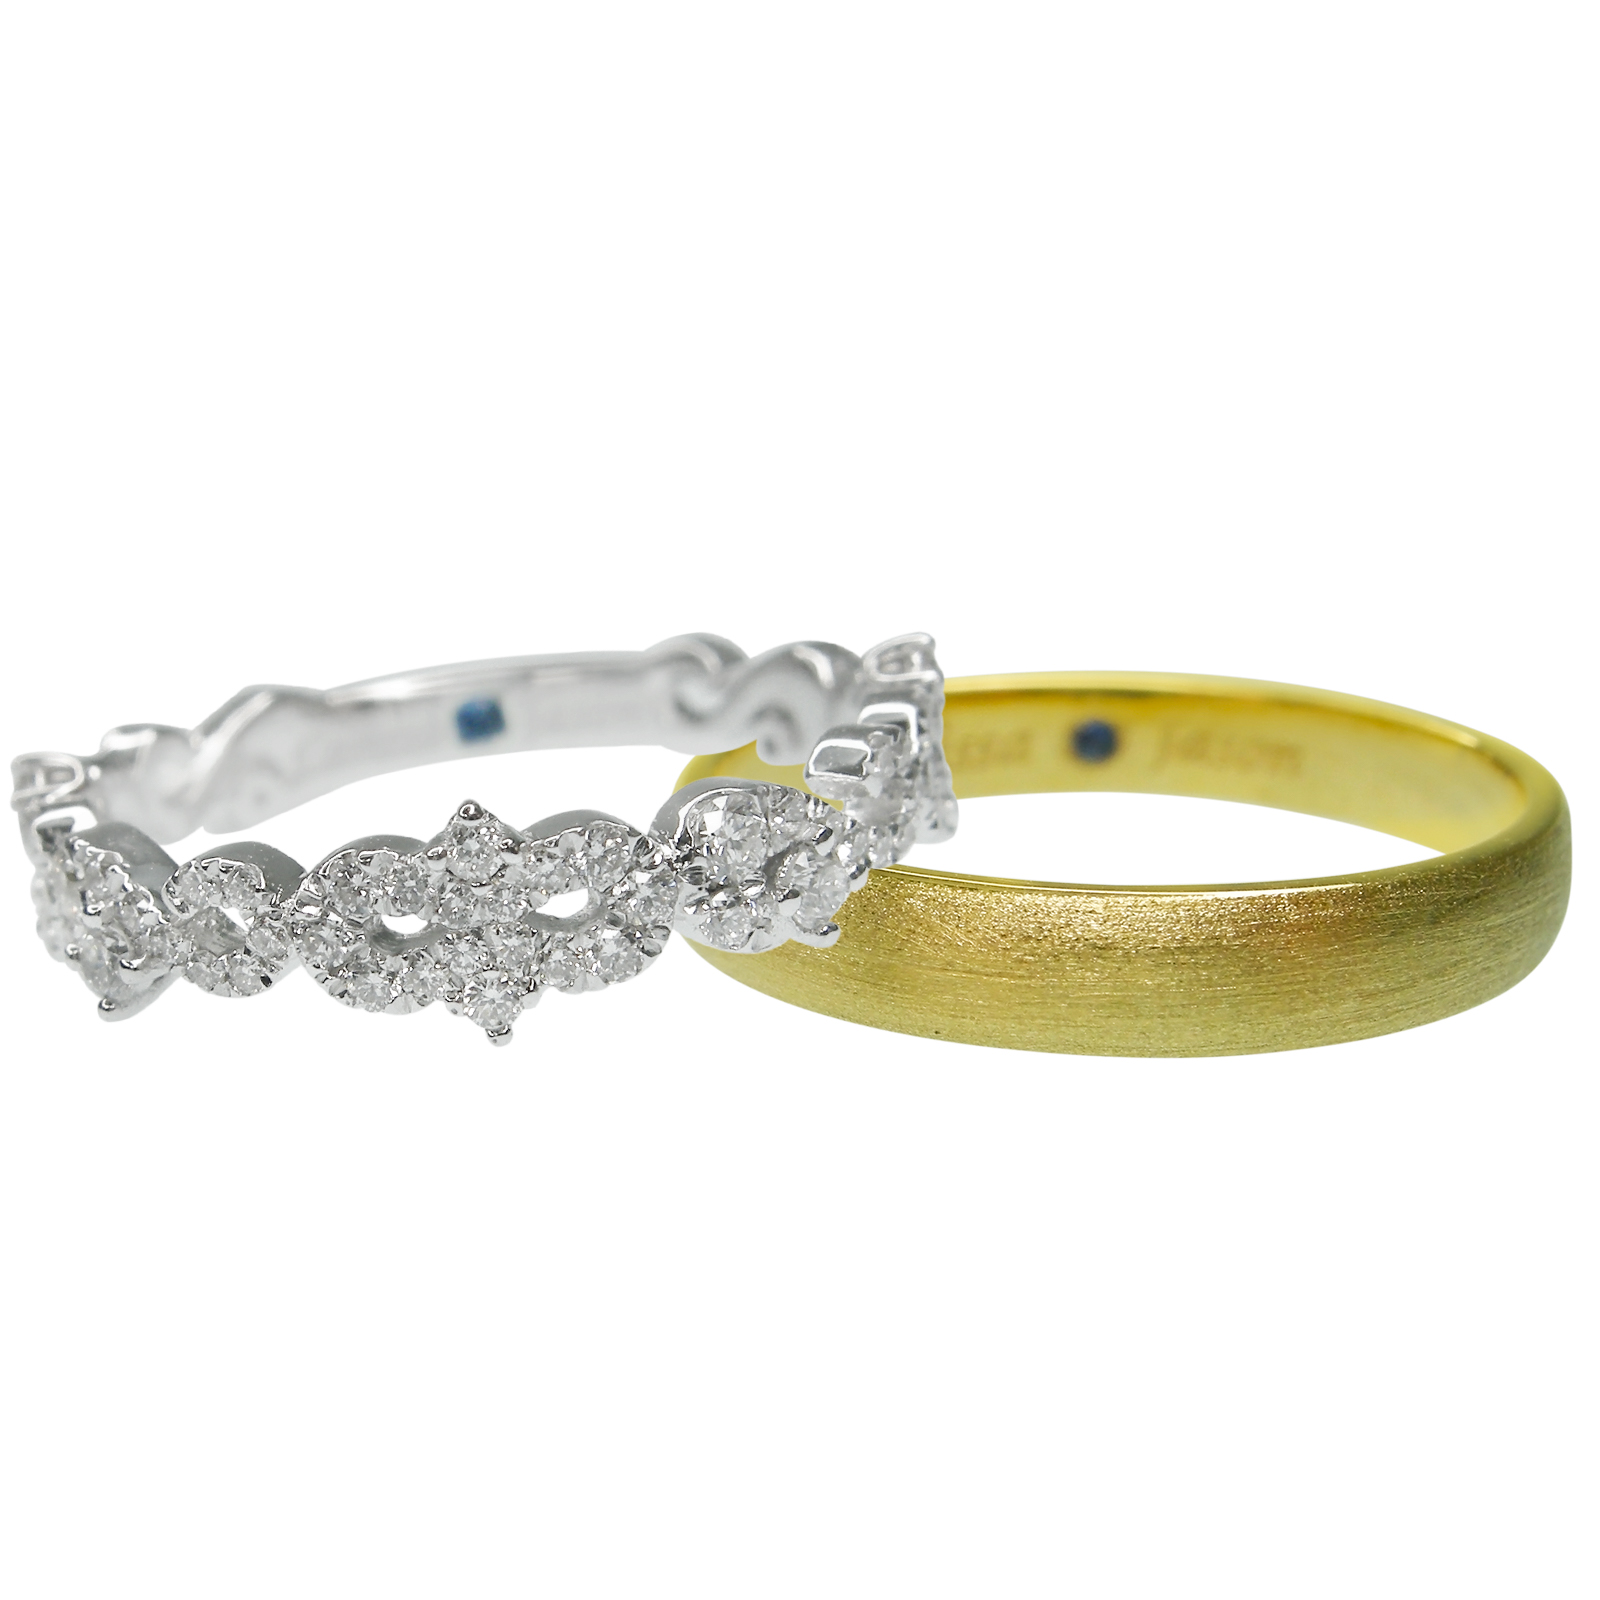 SIGNATURE DIAMOND BRIDAL WITH YELLOW GOLD BRUSHED MEN'S BAND